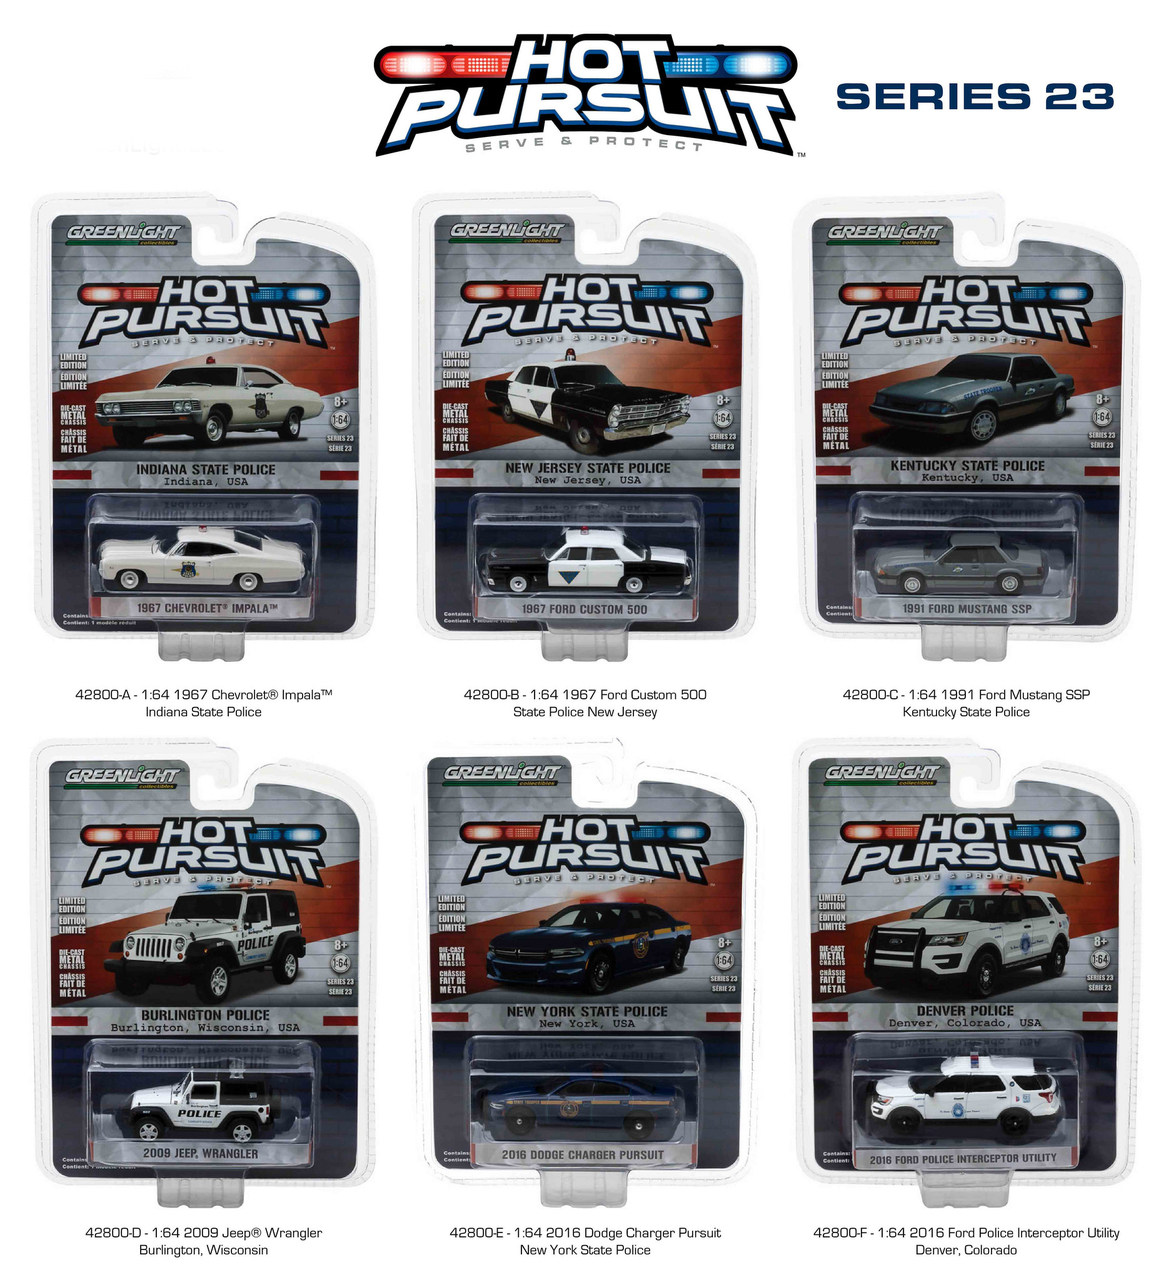 Hot Pursuit Series 23 6pc Diecast Car Set 1/64 Diecast Model Cars by Greenlight